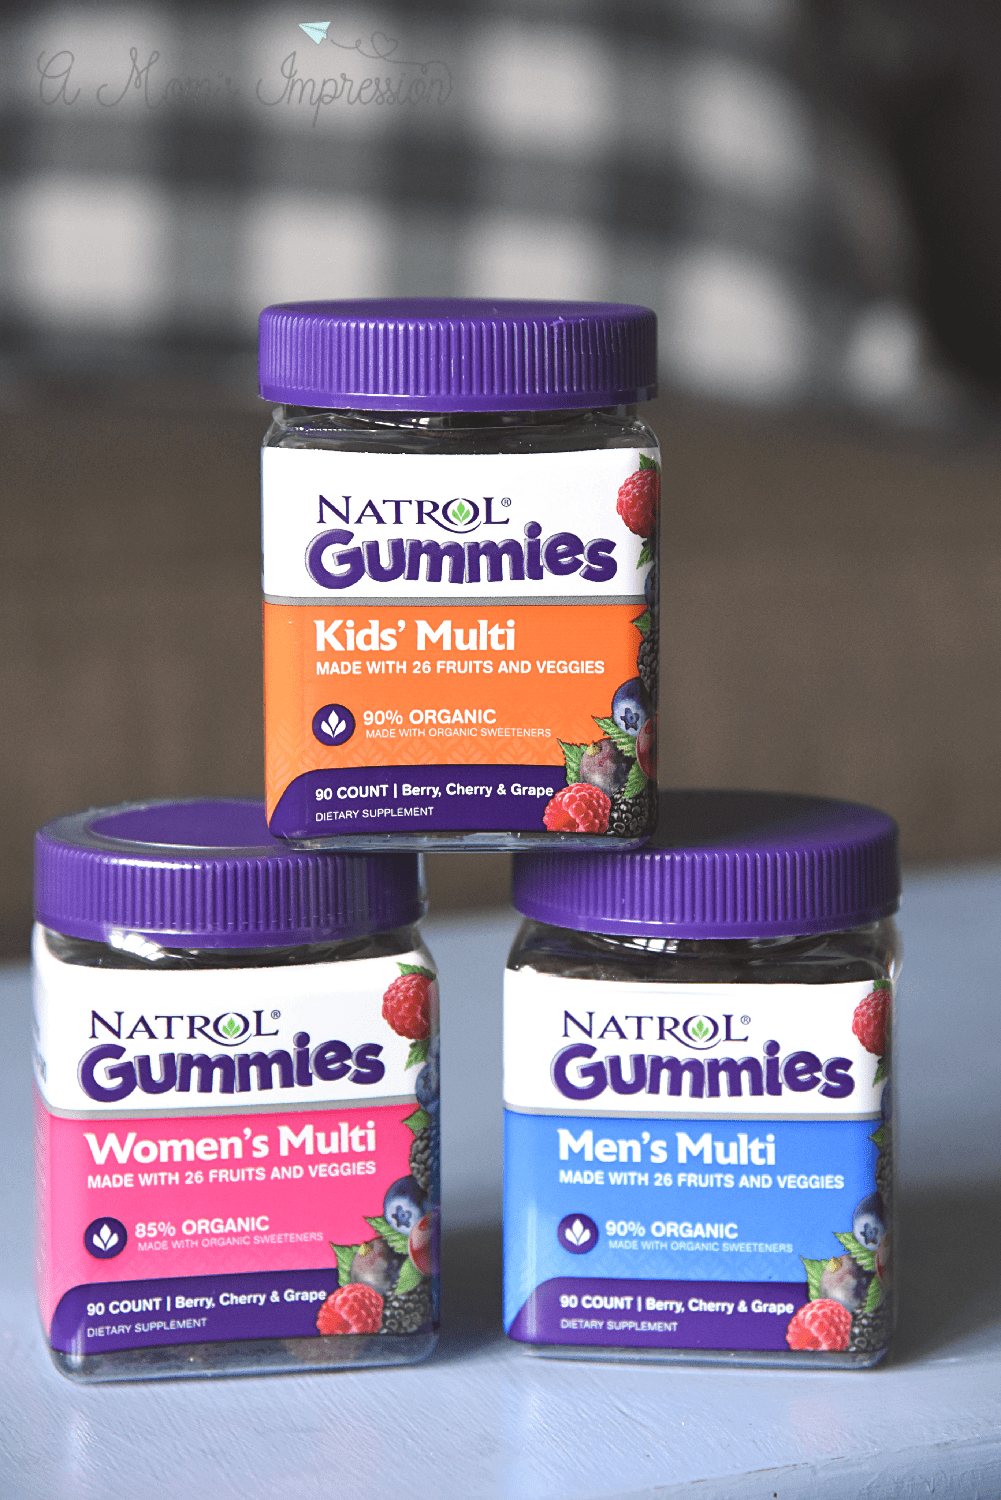 Types of Natrol gummies